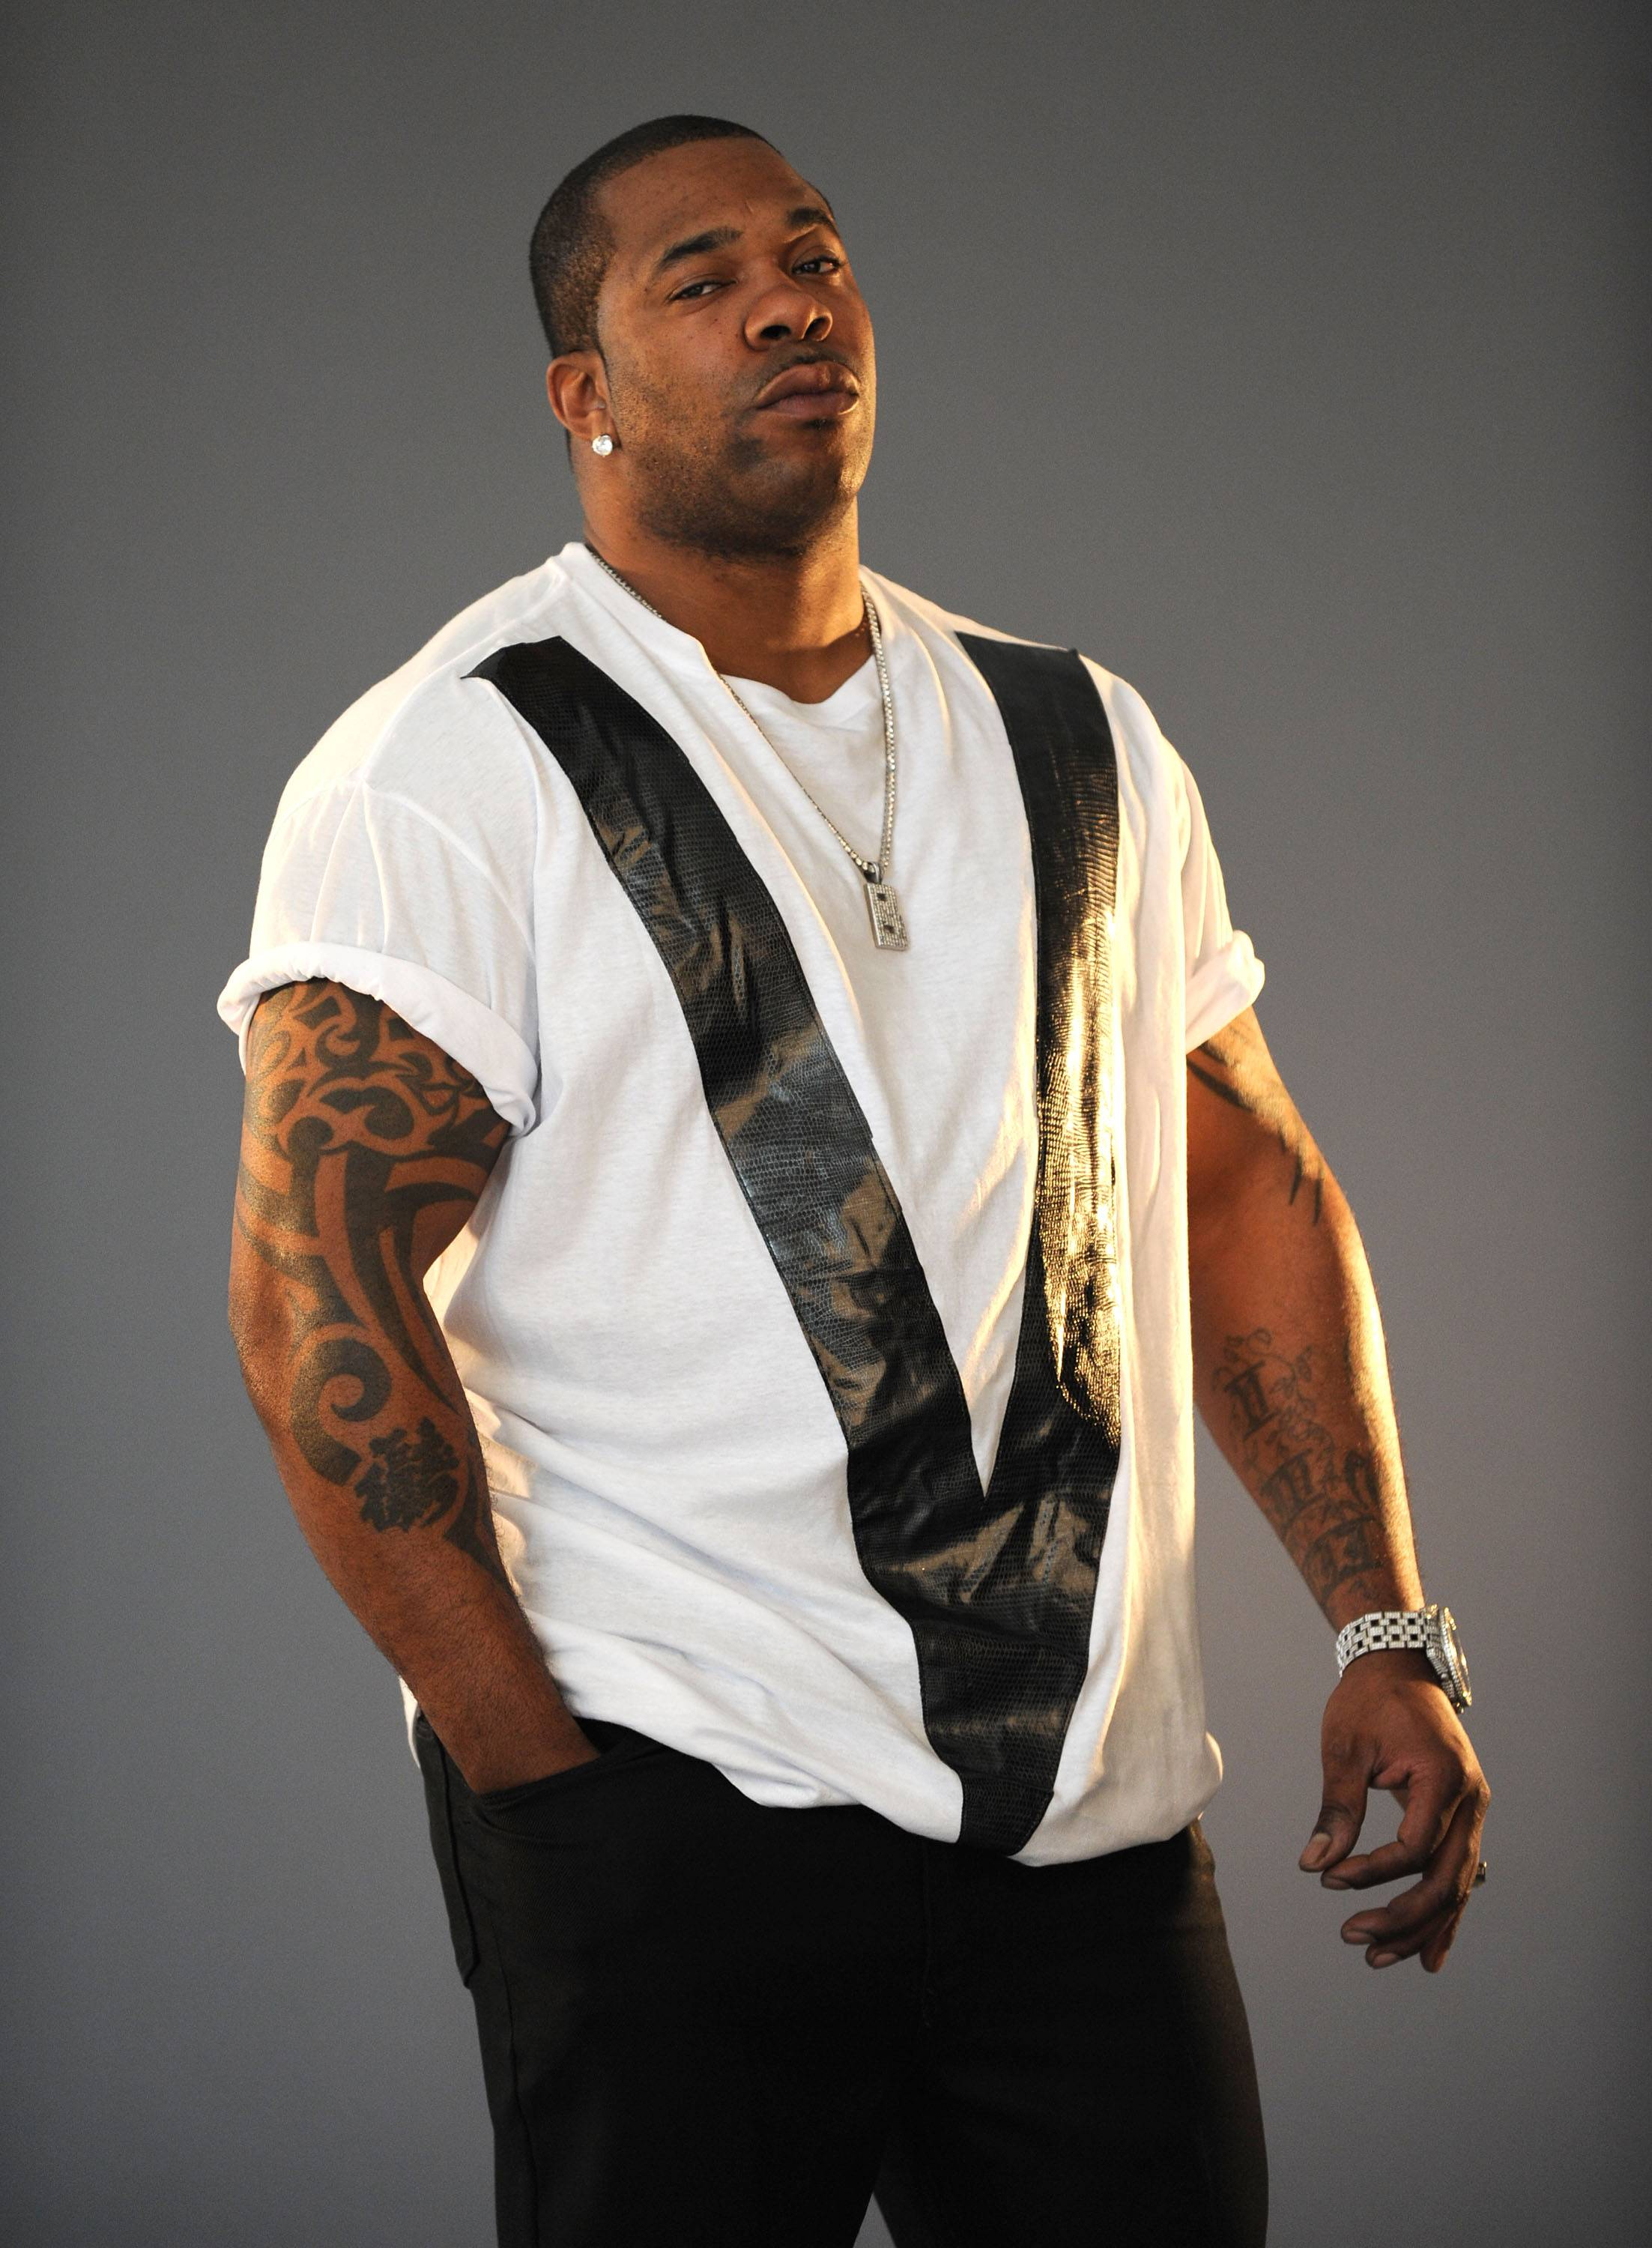 Violator: Busta RhymesVictim: Flavor Flav  - One could argue that this is a stretch but Busta actually went after Flav once he began dating Flavor of Love winner Deelishis. With all the back and forth, and rapper Game also somehow in the mix, Deelishis didn't end up with a rapper at all, she married an average Joe.(Photo by Jason Kempin/Getty Images)